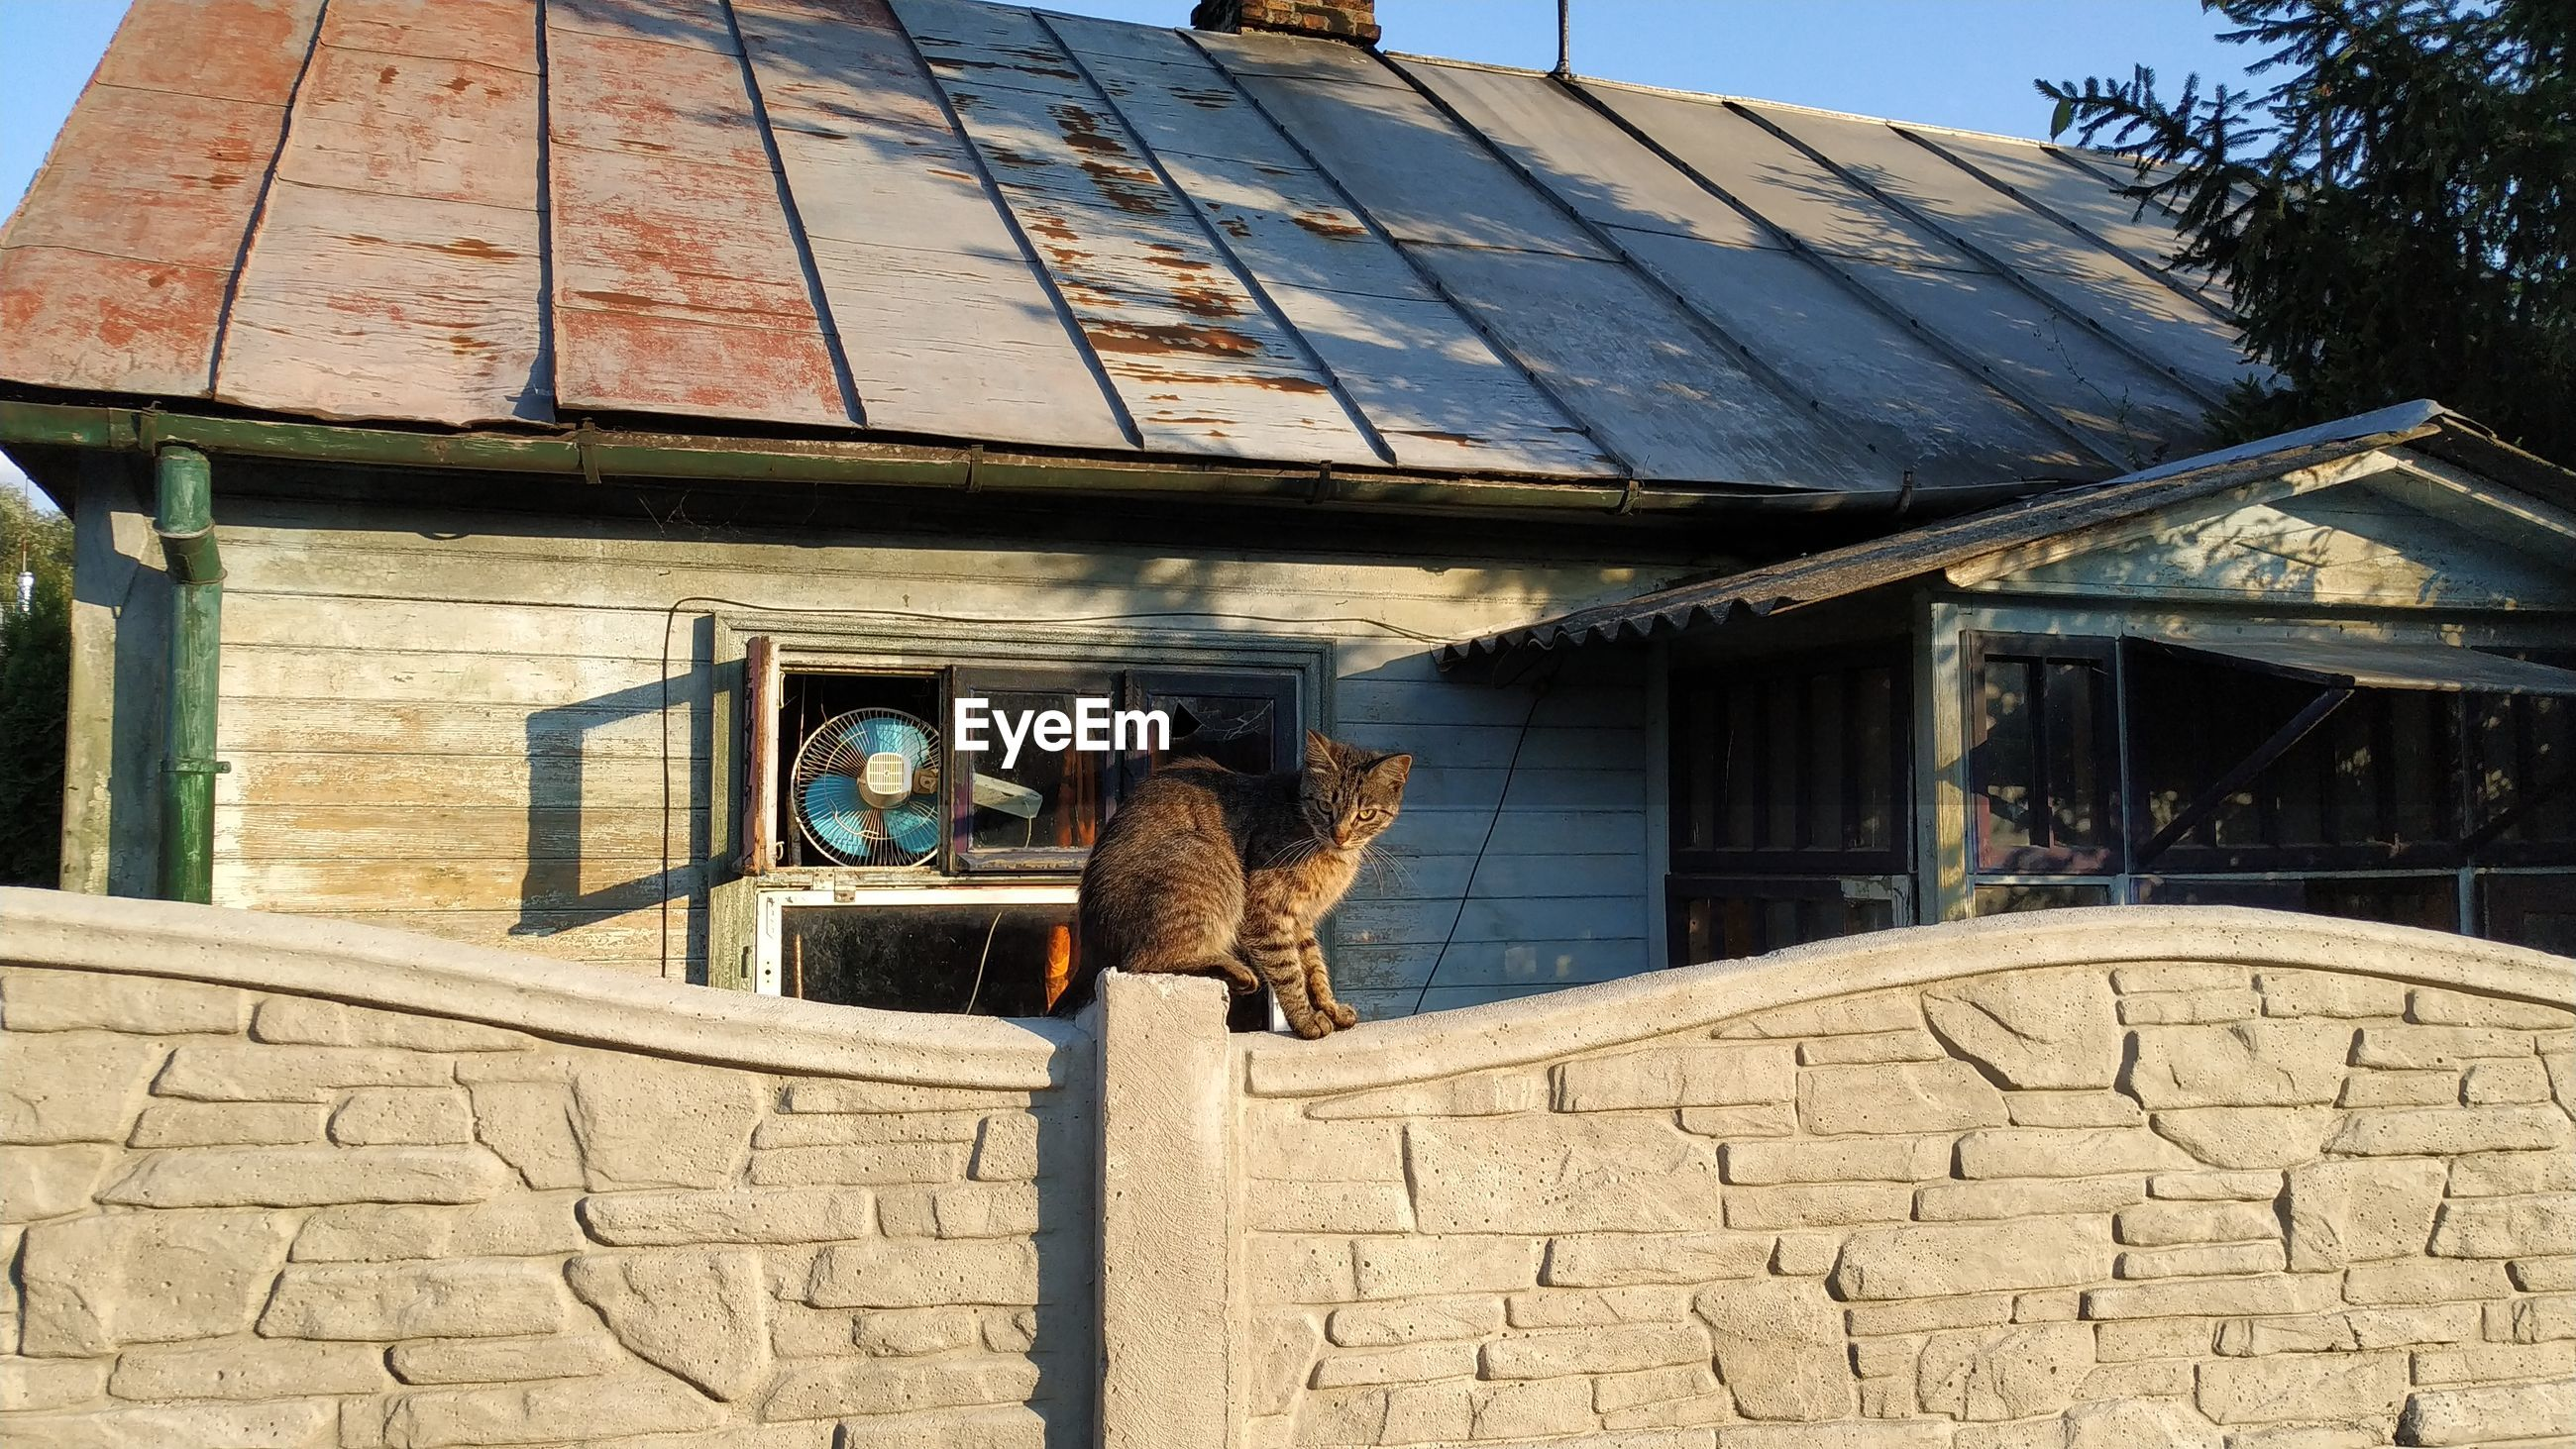 VIEW OF AN ANIMAL ON ROOF